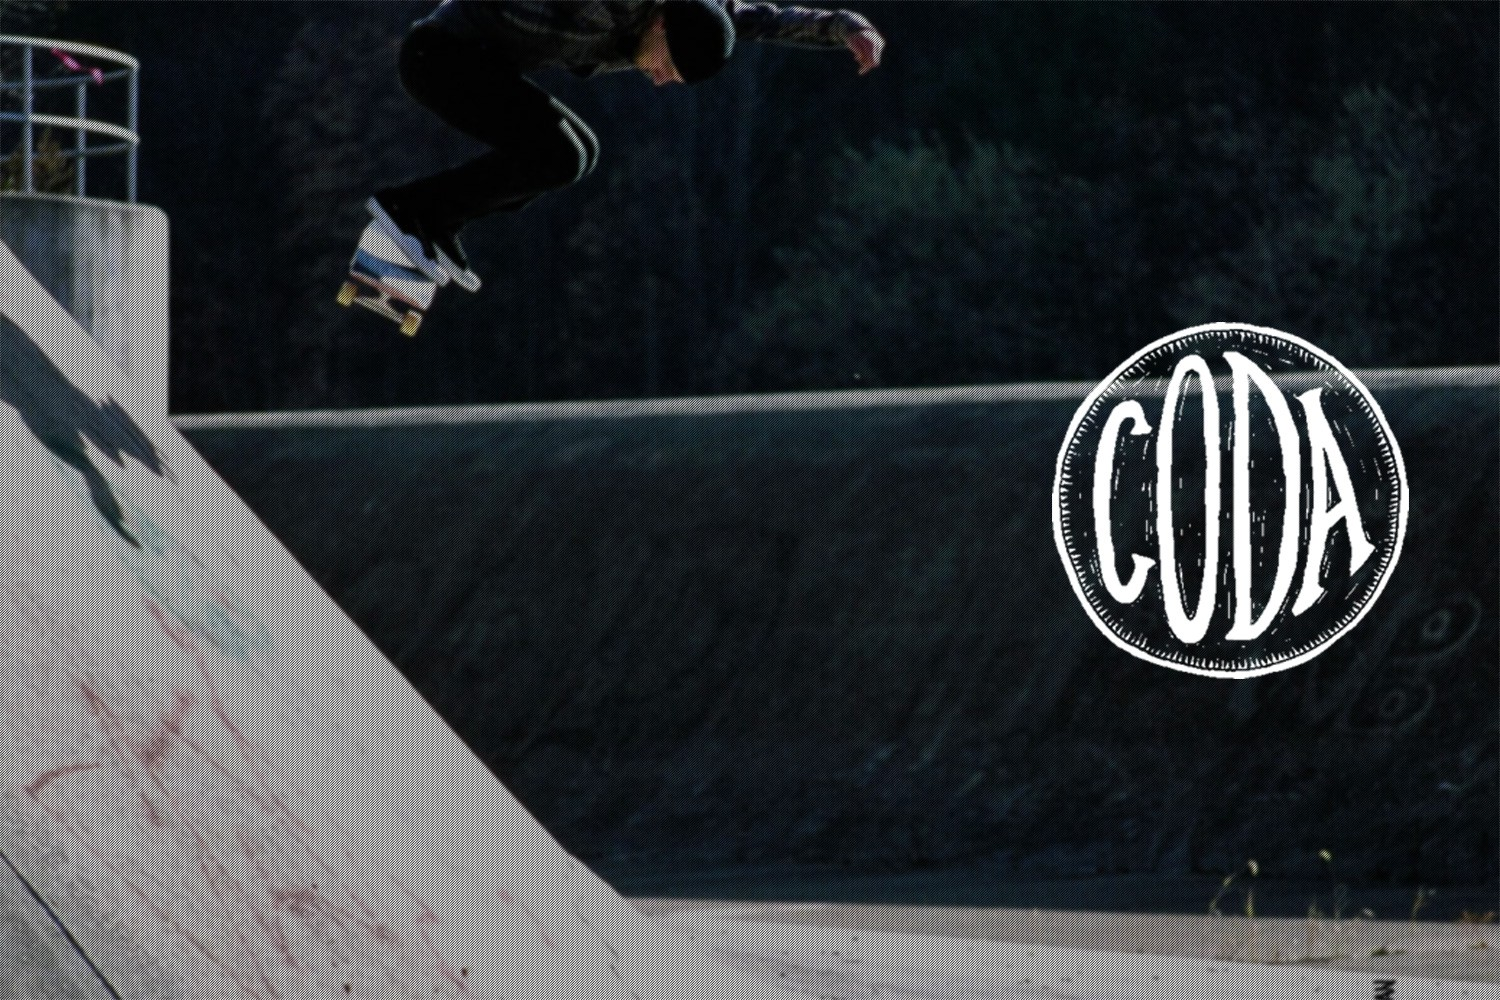 CODA SKATEBOARDS